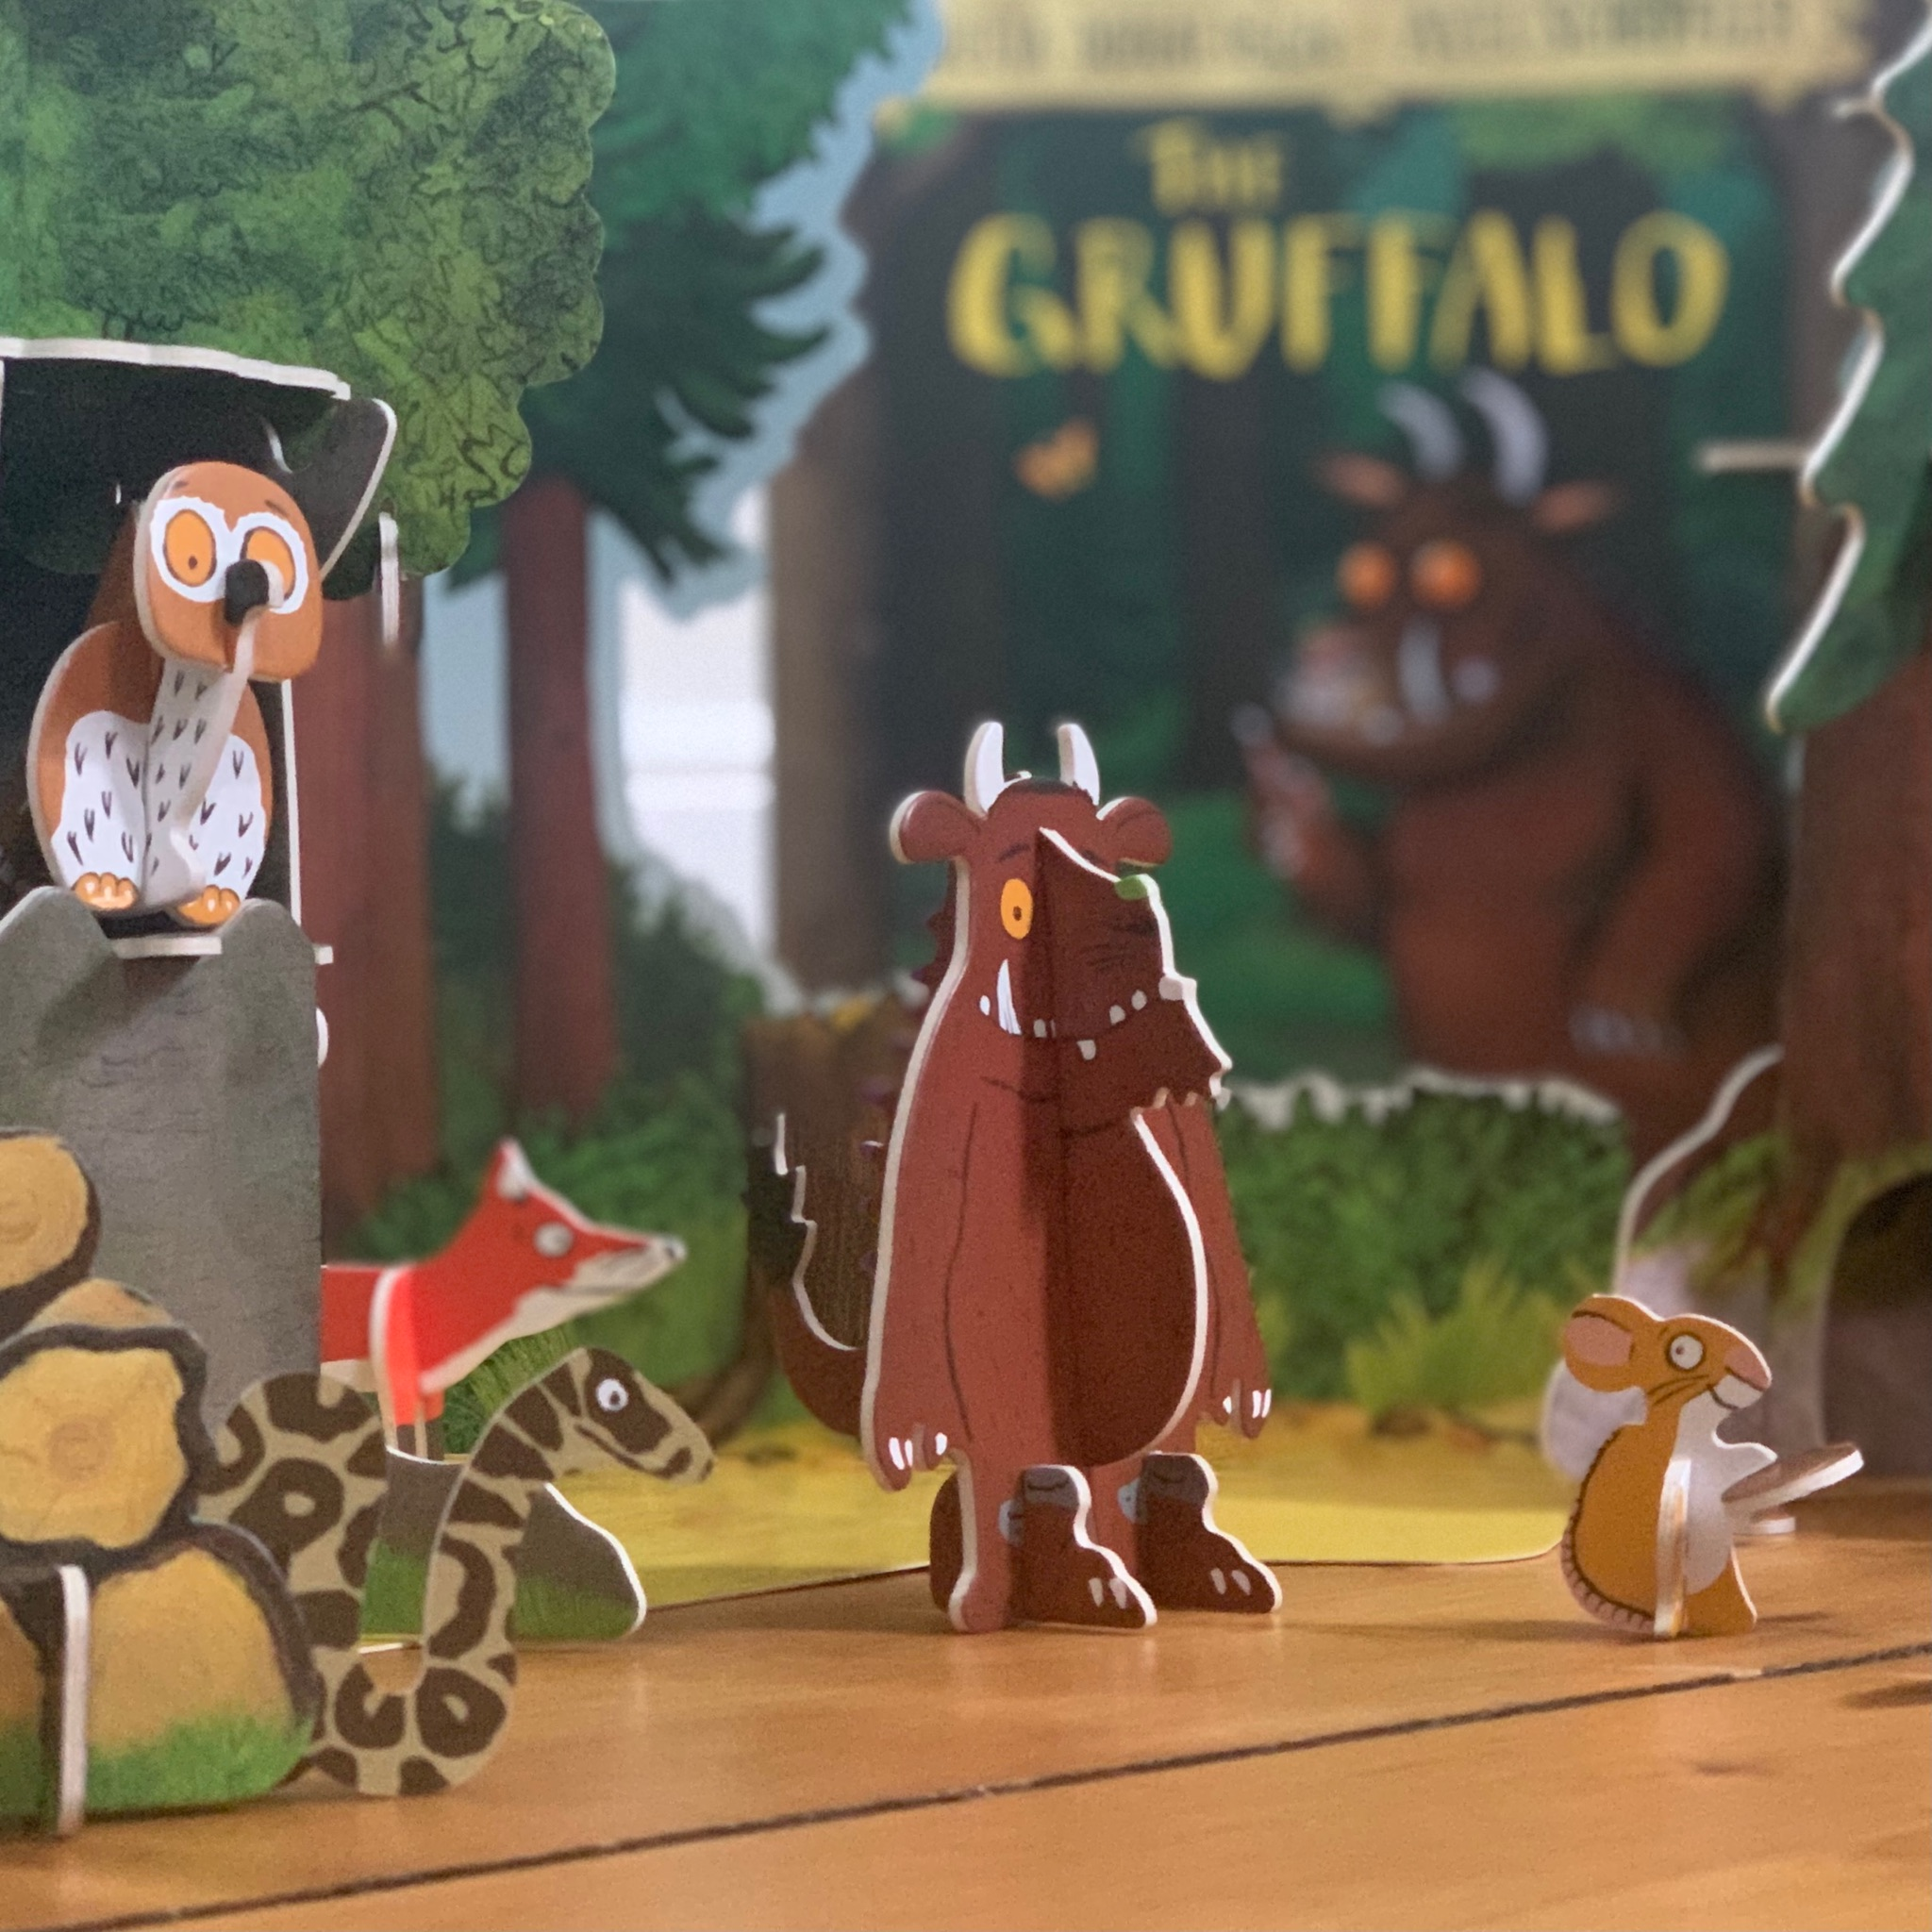 Gruffalo Play Set